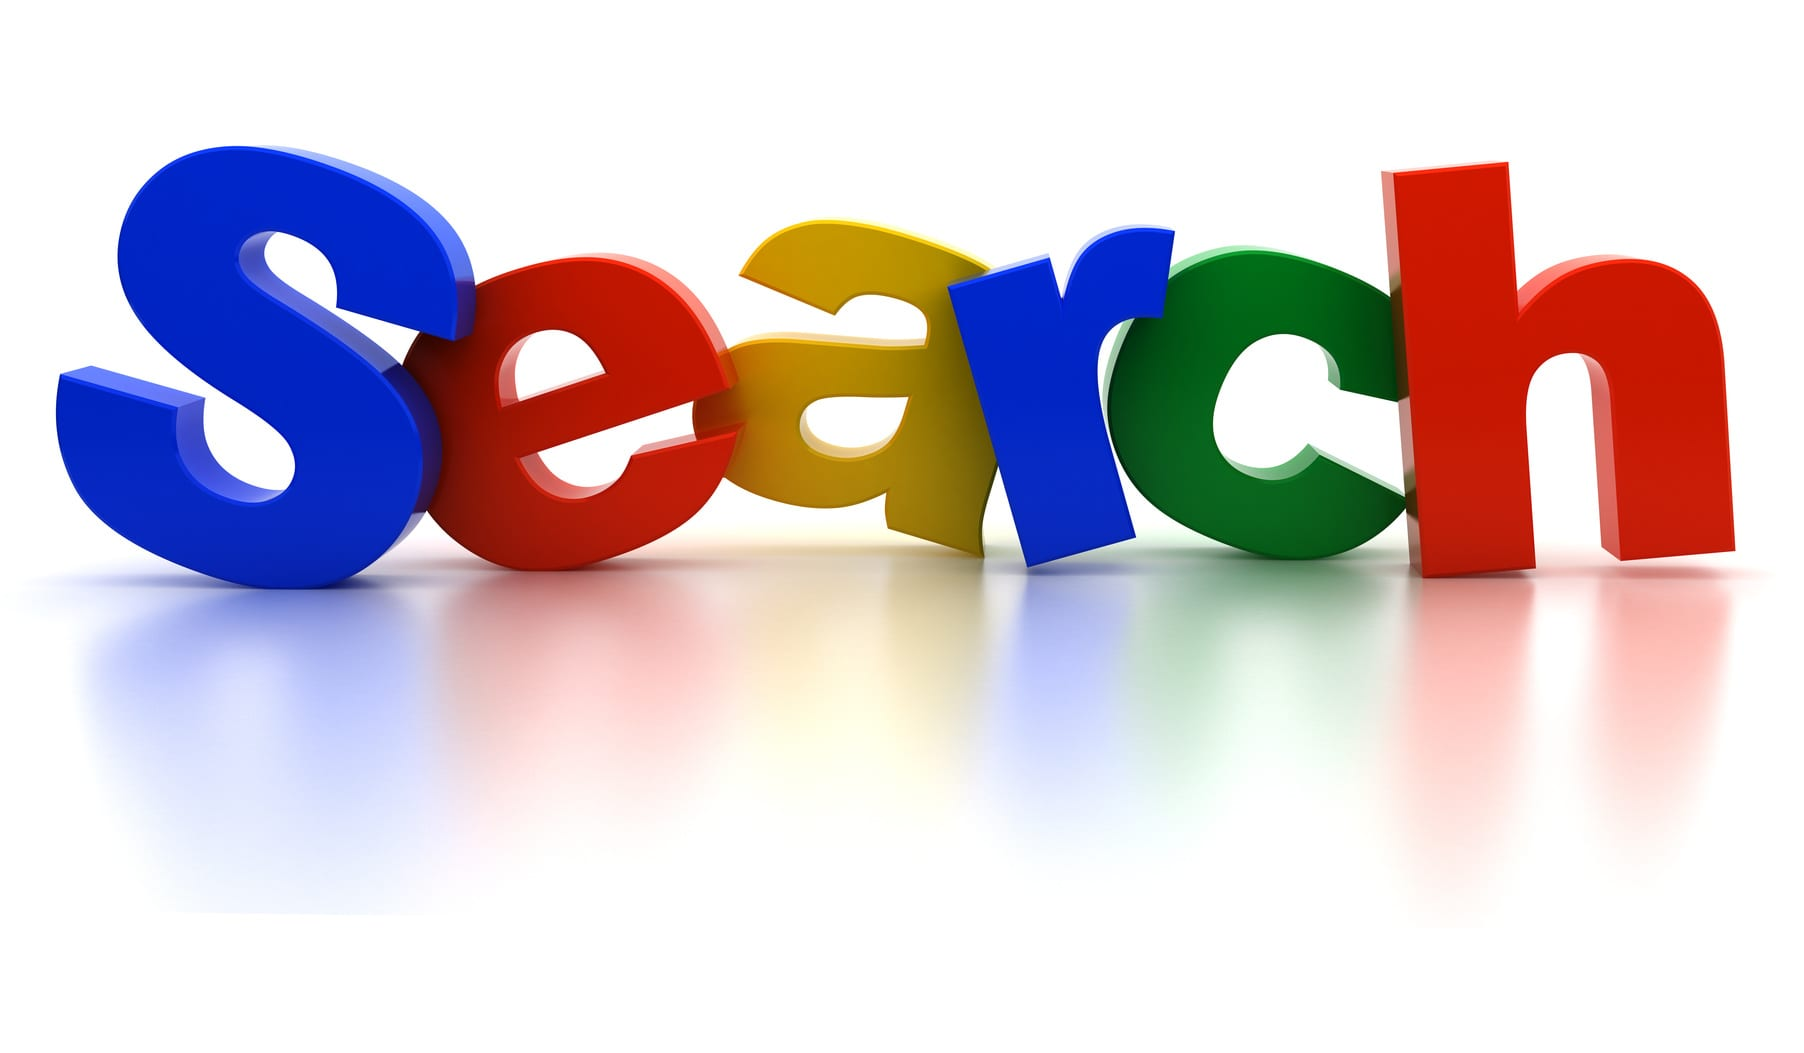 Why Are Search Engines Important?